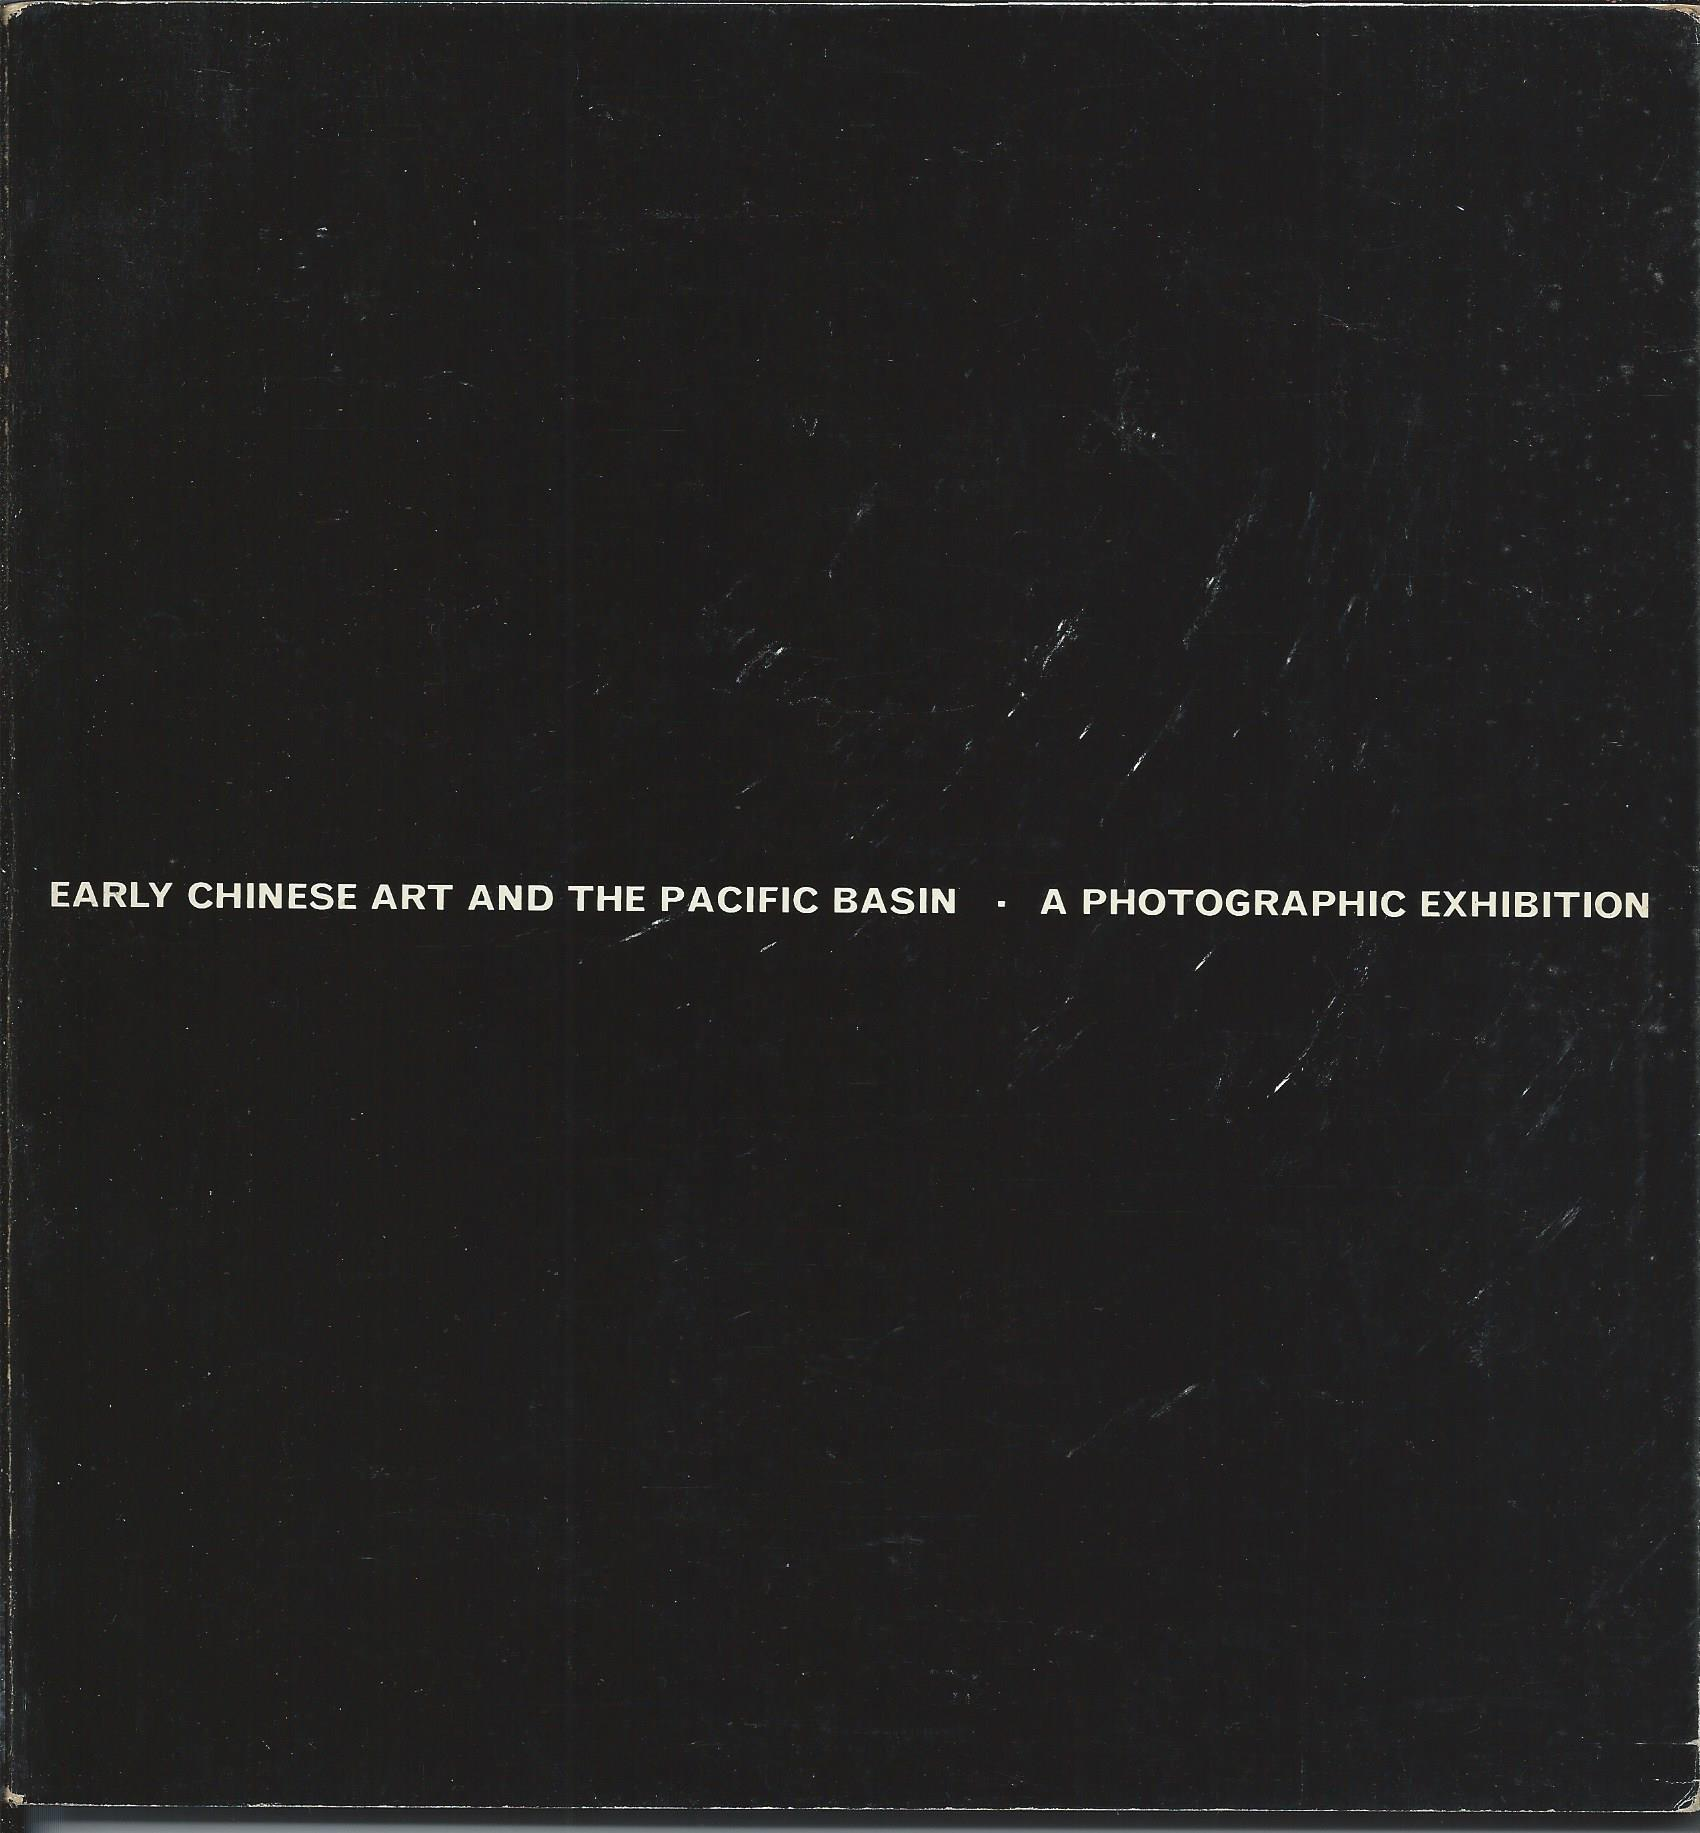 Image for EARLY CHINESE ART AND THE PACIFIC BASIN